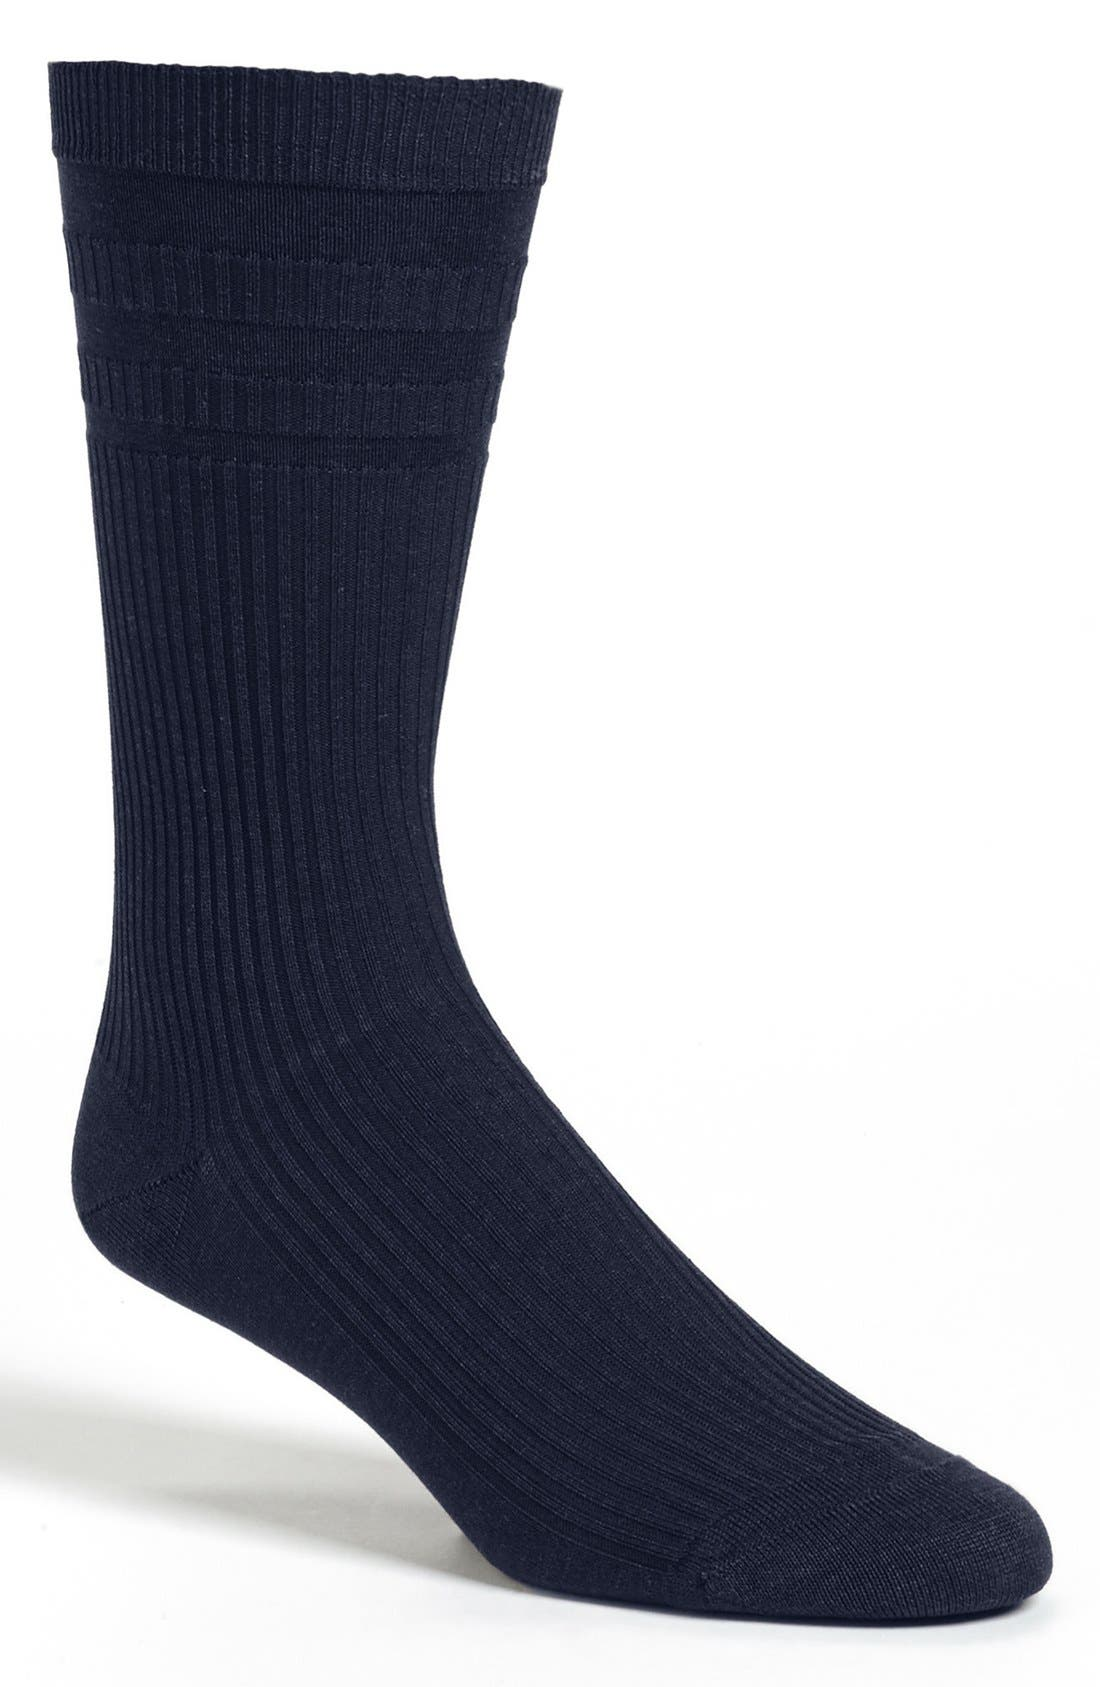 PANTHERELLA 'Comfort Top' Dress Socks